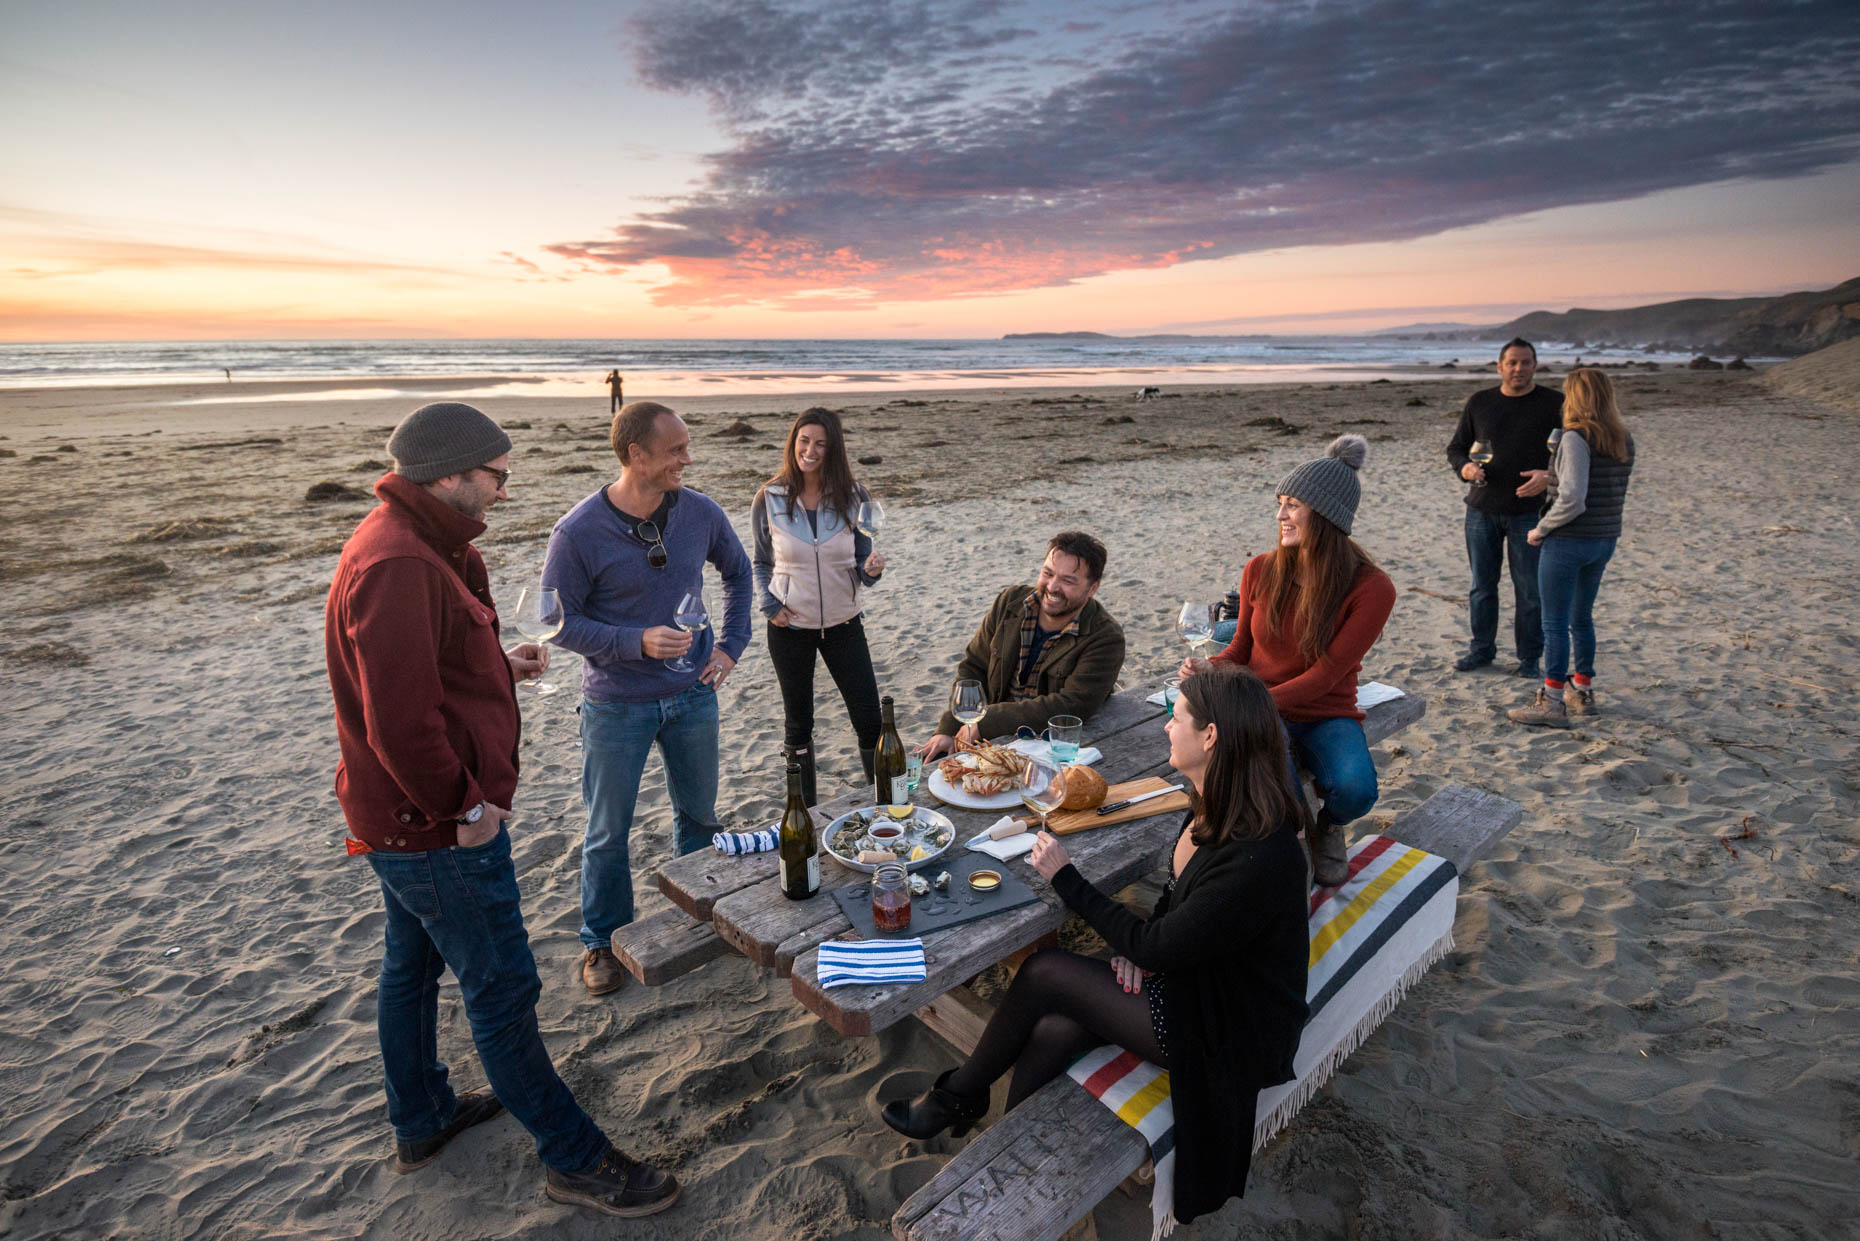 Lifestyle - North Coast Picnic At Sunset, Dillon Beach, California